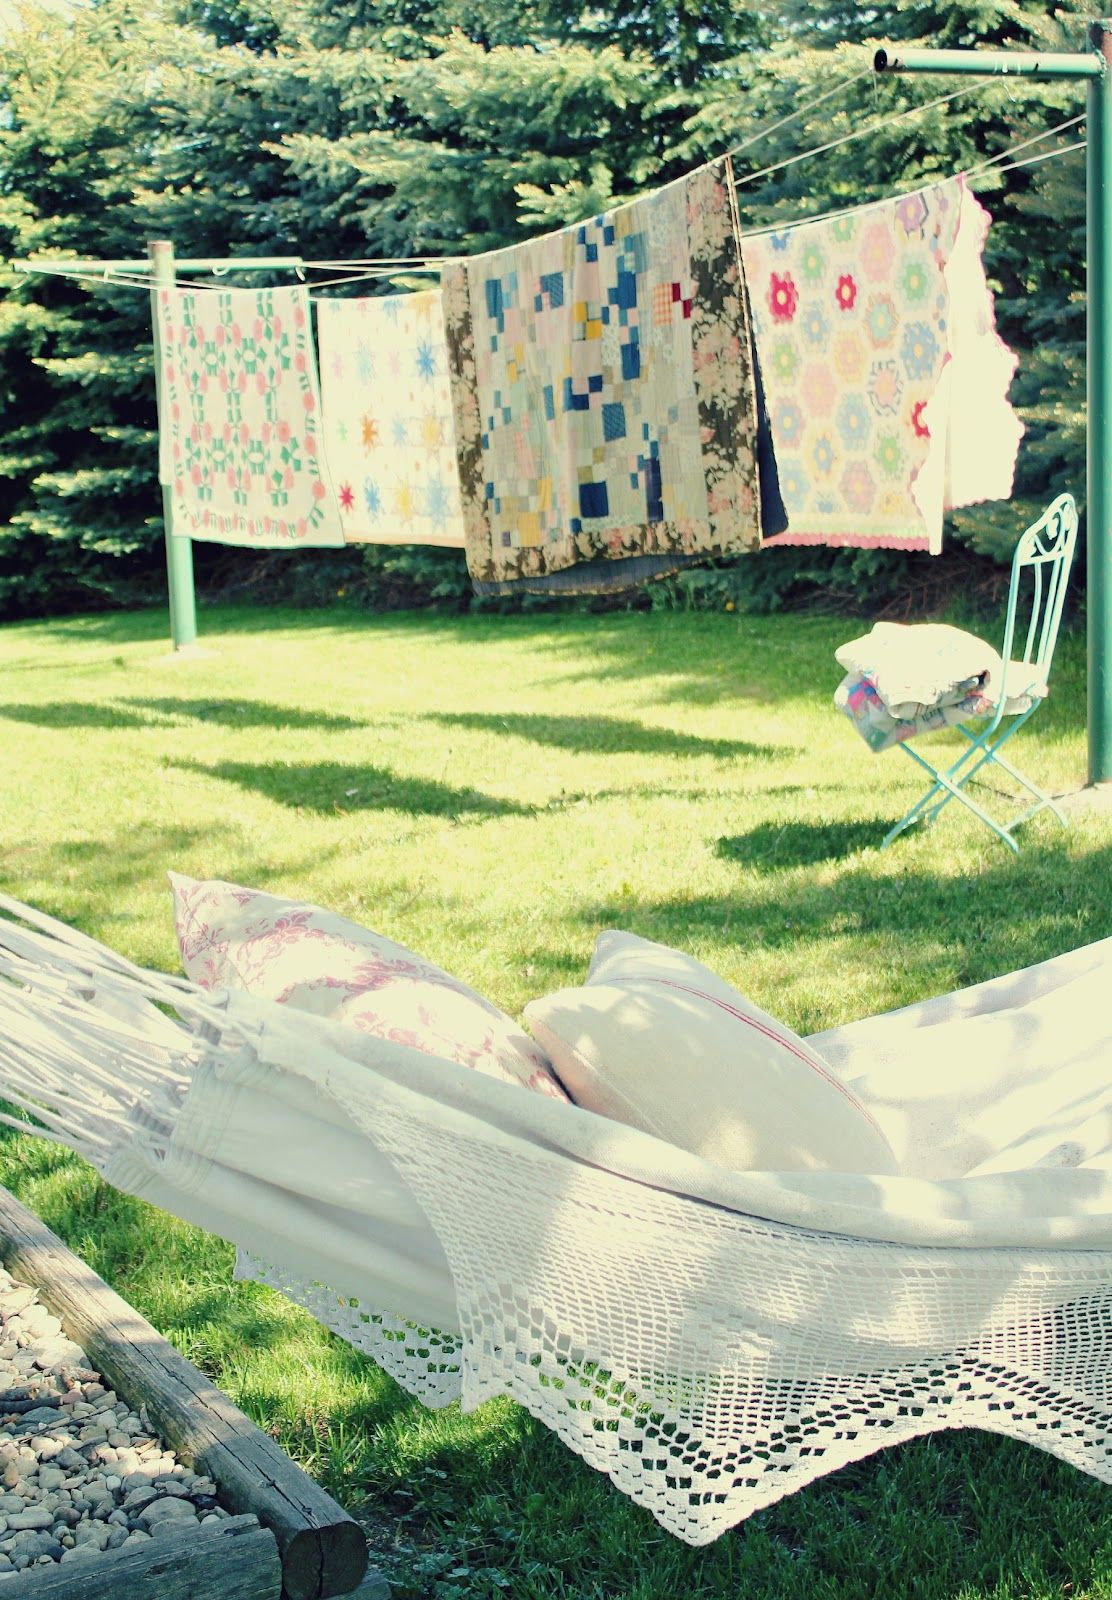 quilts blowing in the sunny breeze--a hammock to nap on